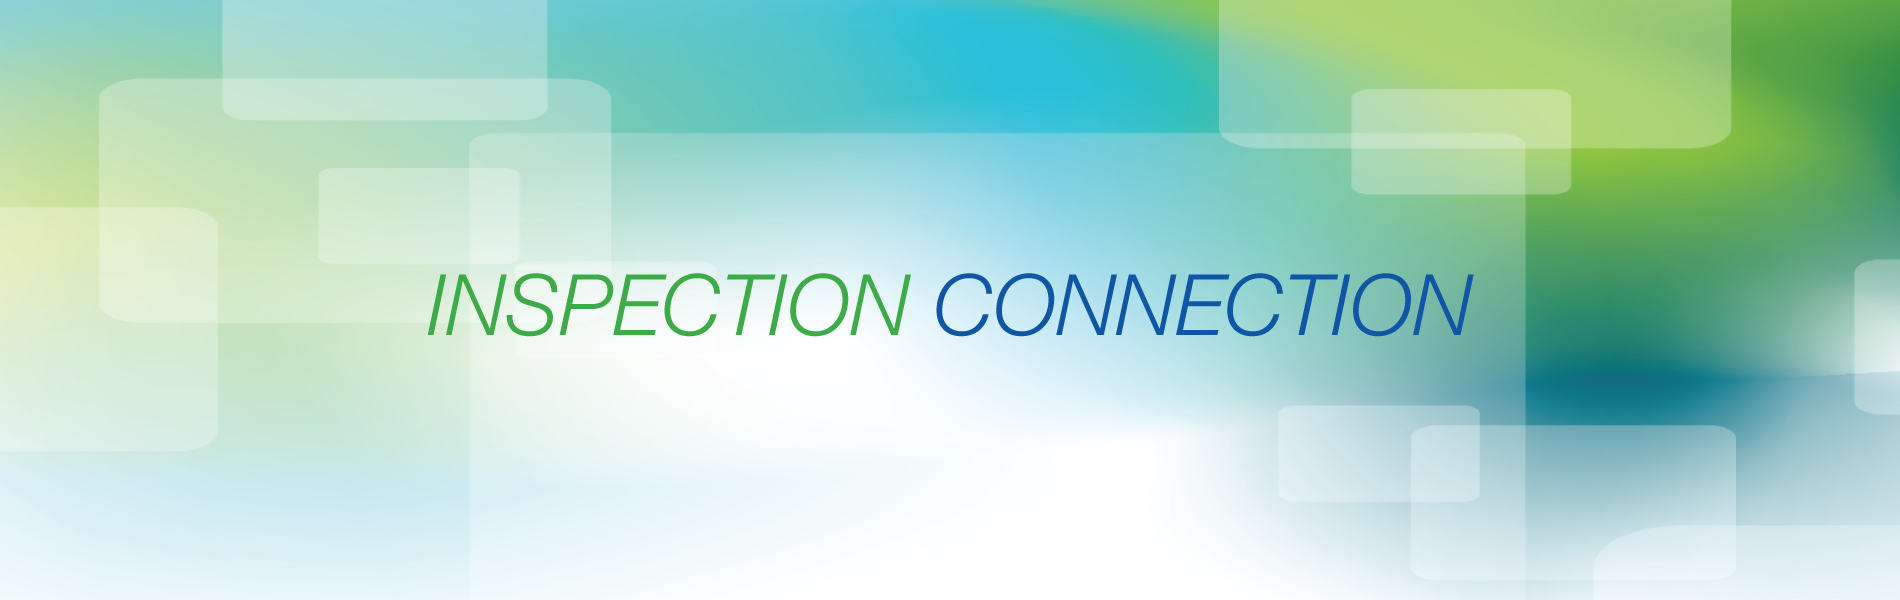 Inspection Connection Banner image